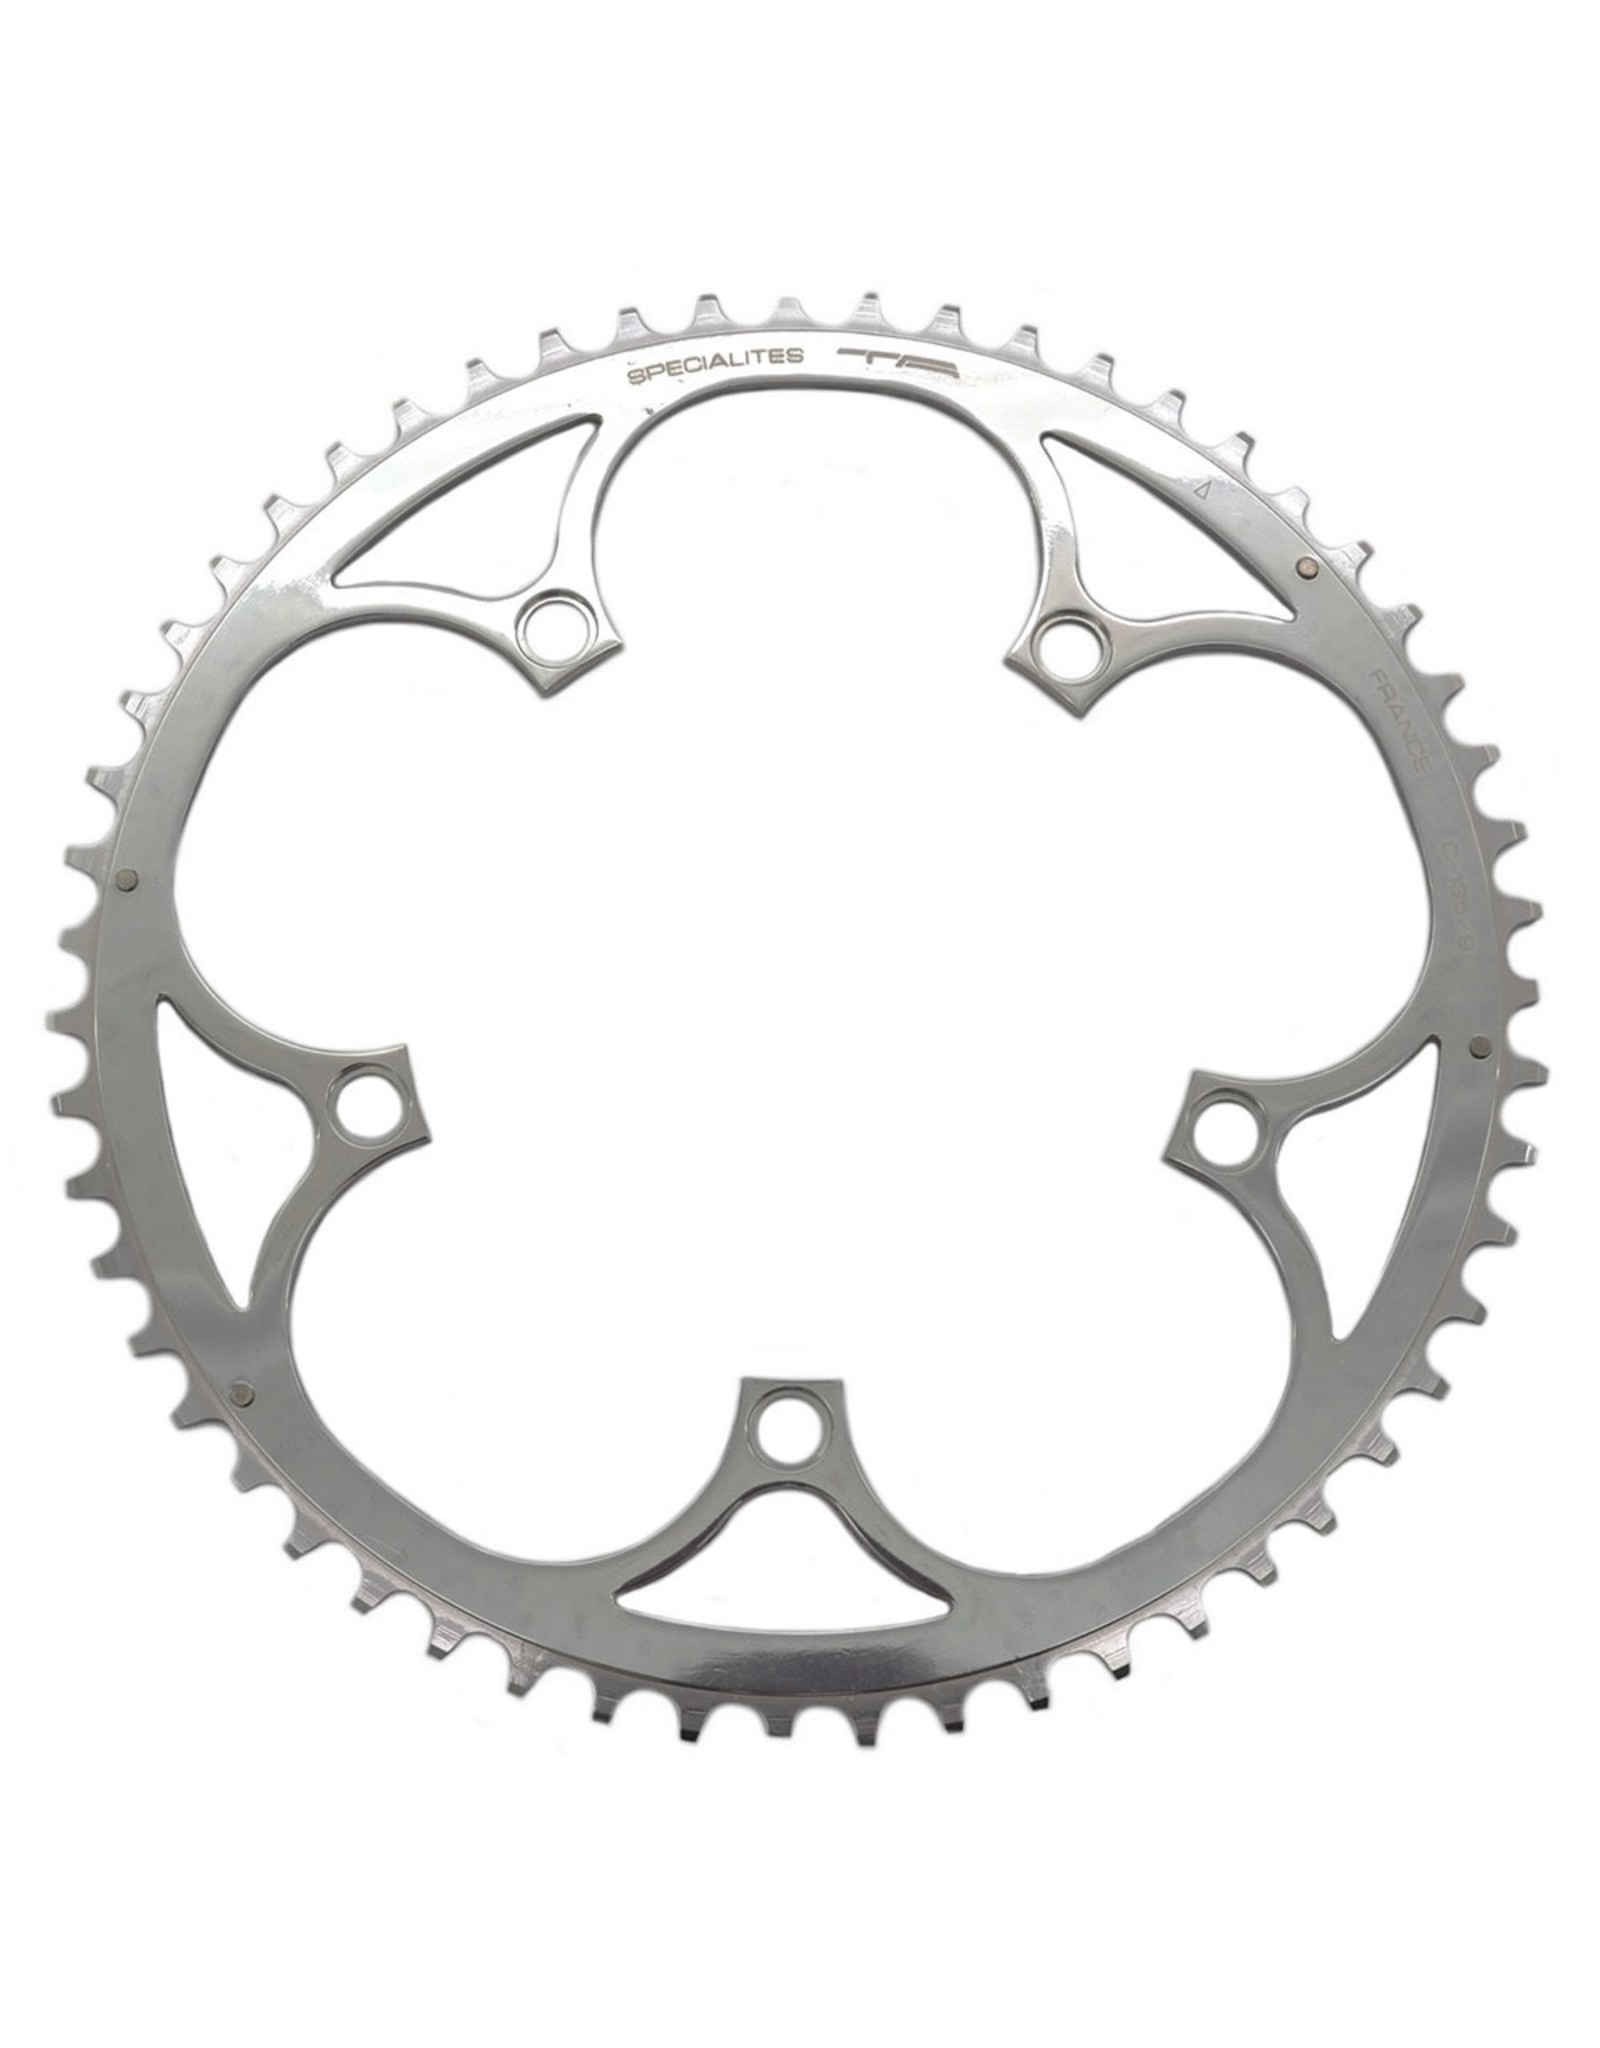 Specialites TA Chainring Road 135 BCD Silver